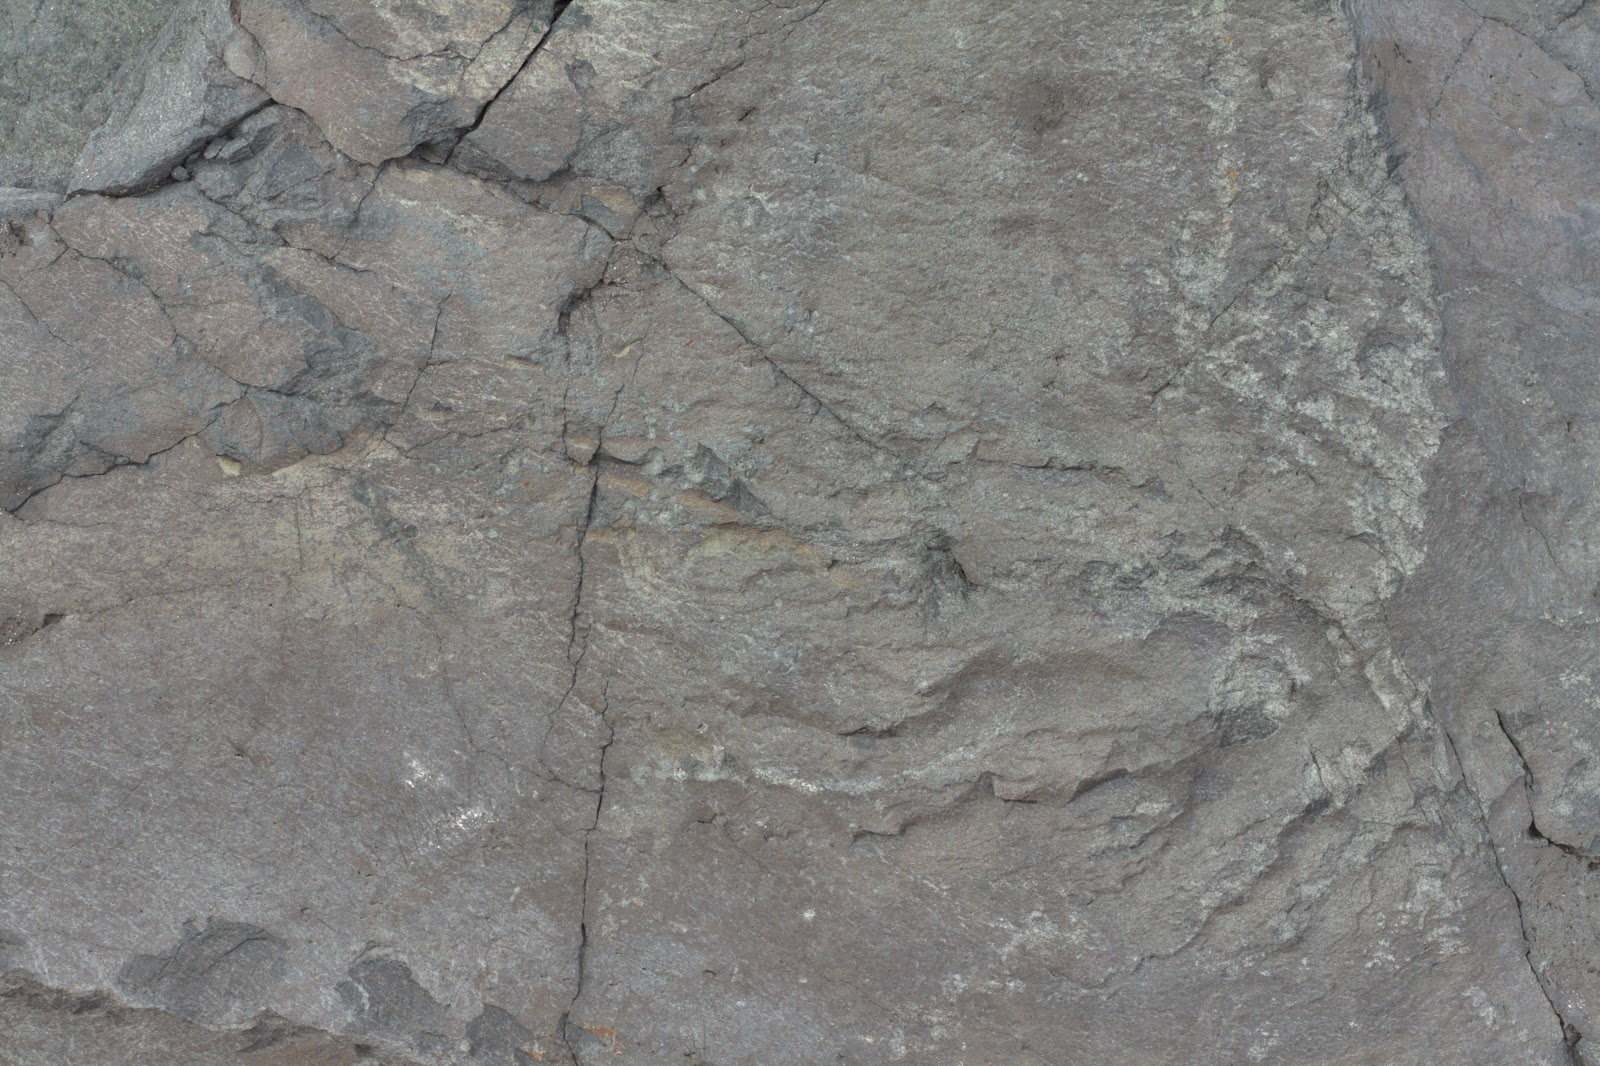 Rock face surface texture 4770x3178